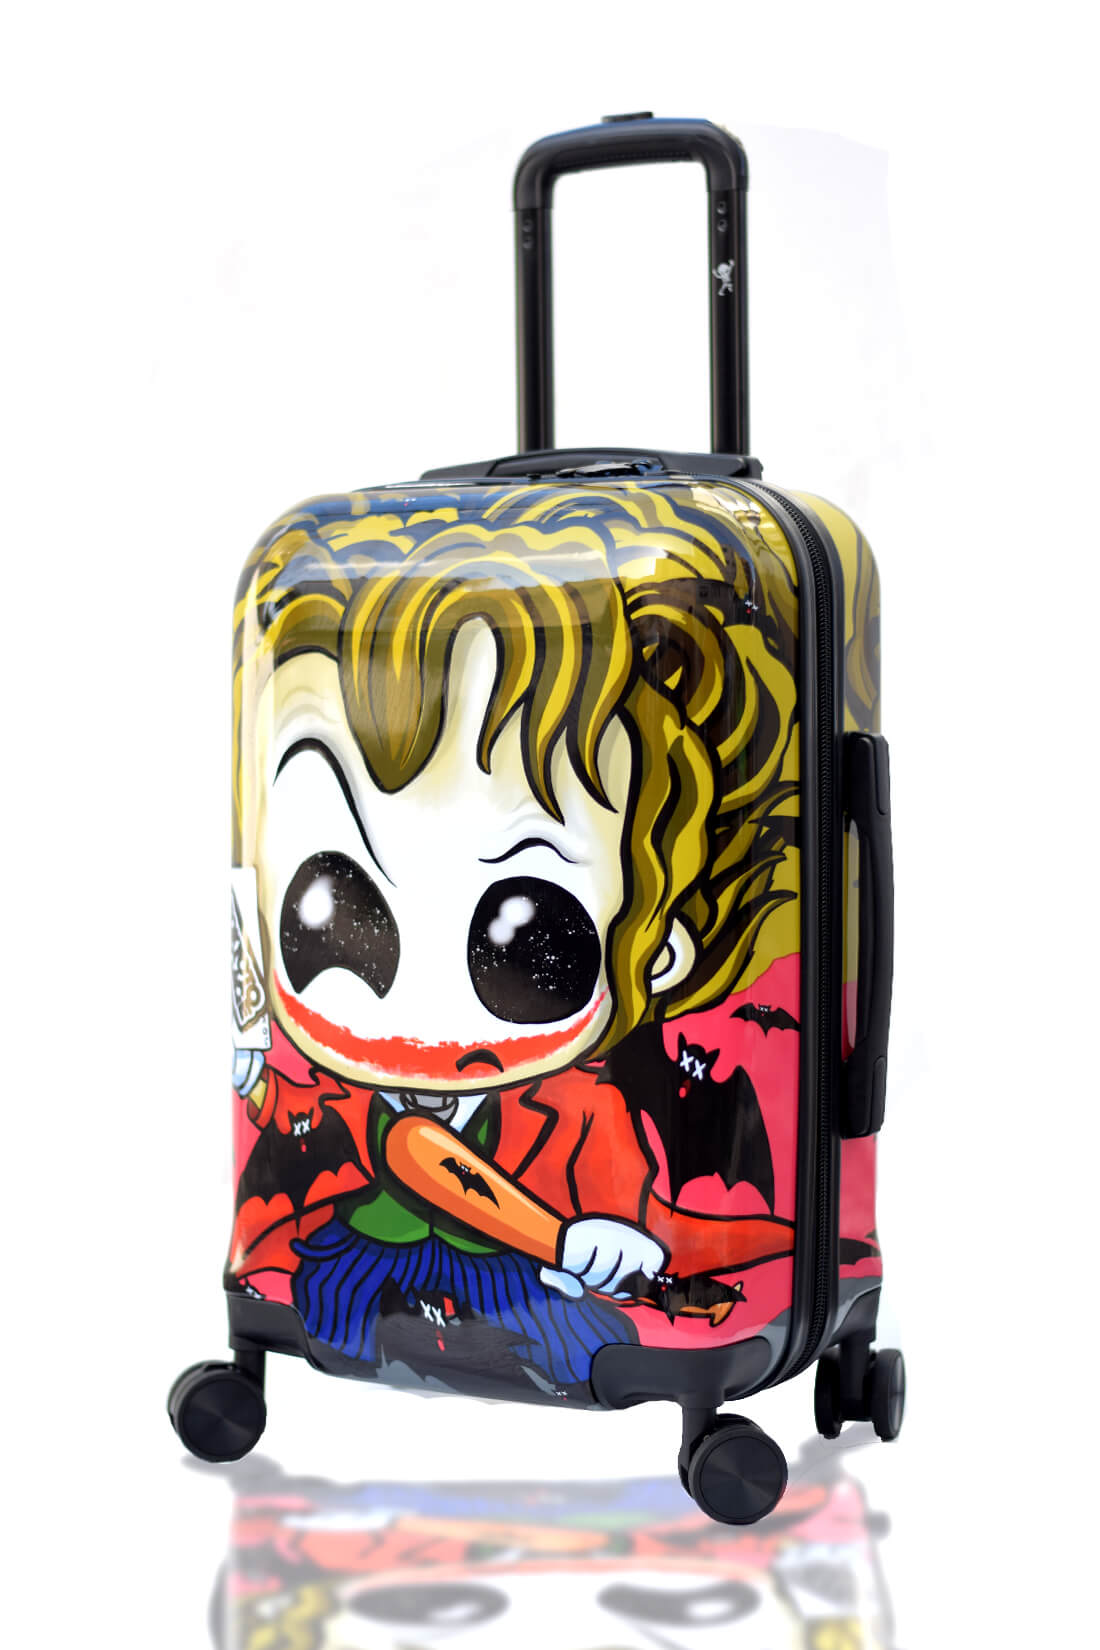 JOKER Valise Enfant de cabine Trolley Online Rigide TOKYOTO LUGGAGE 3